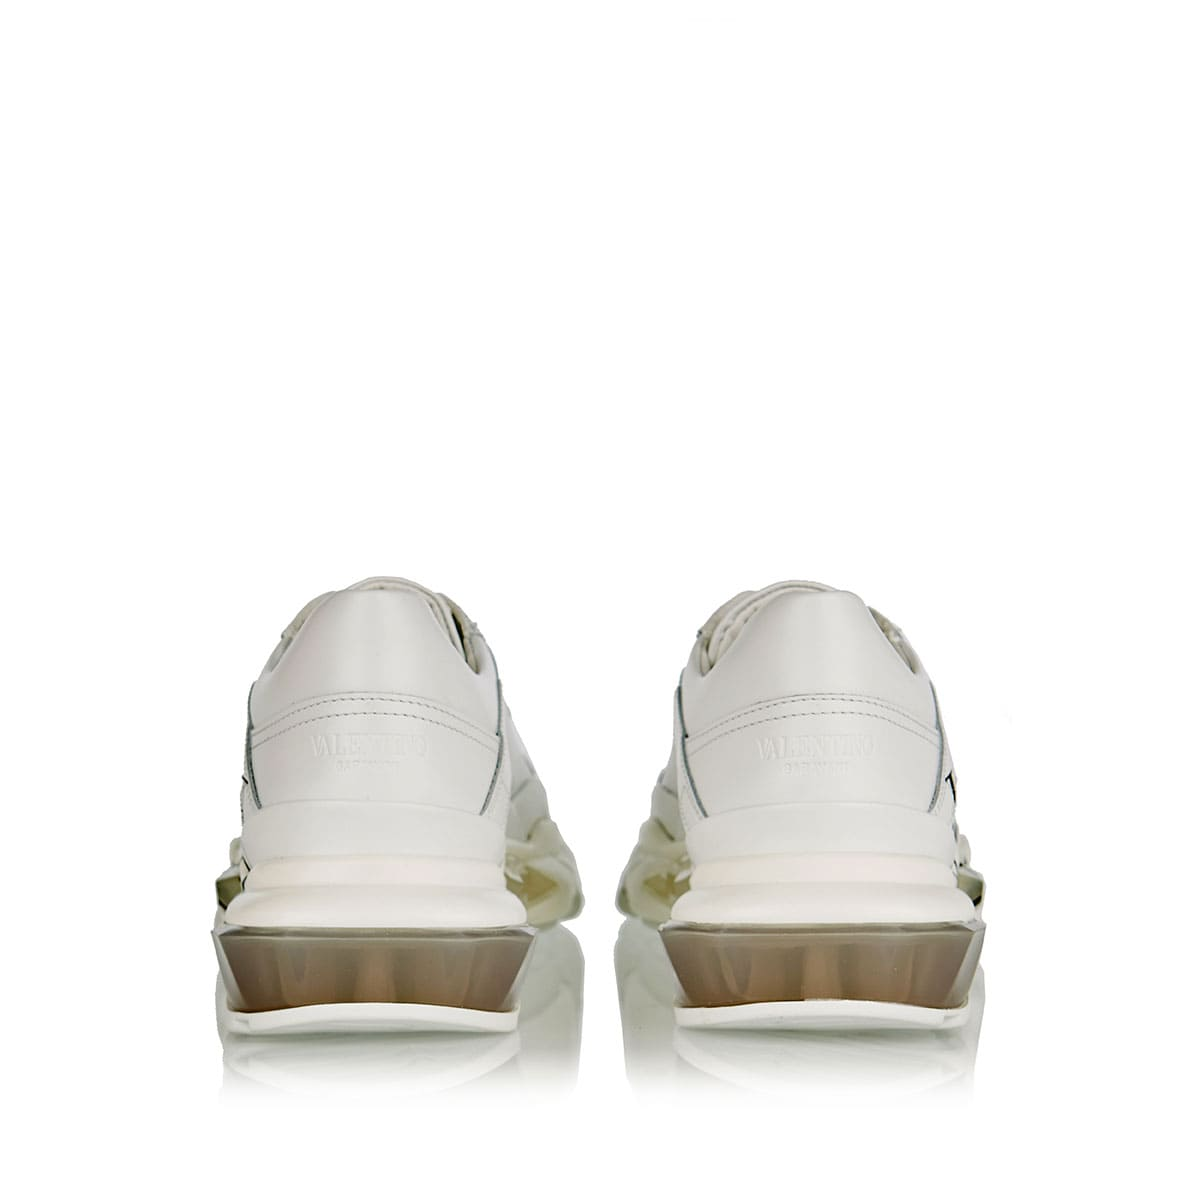 Bounce oversized VLTN sneakers